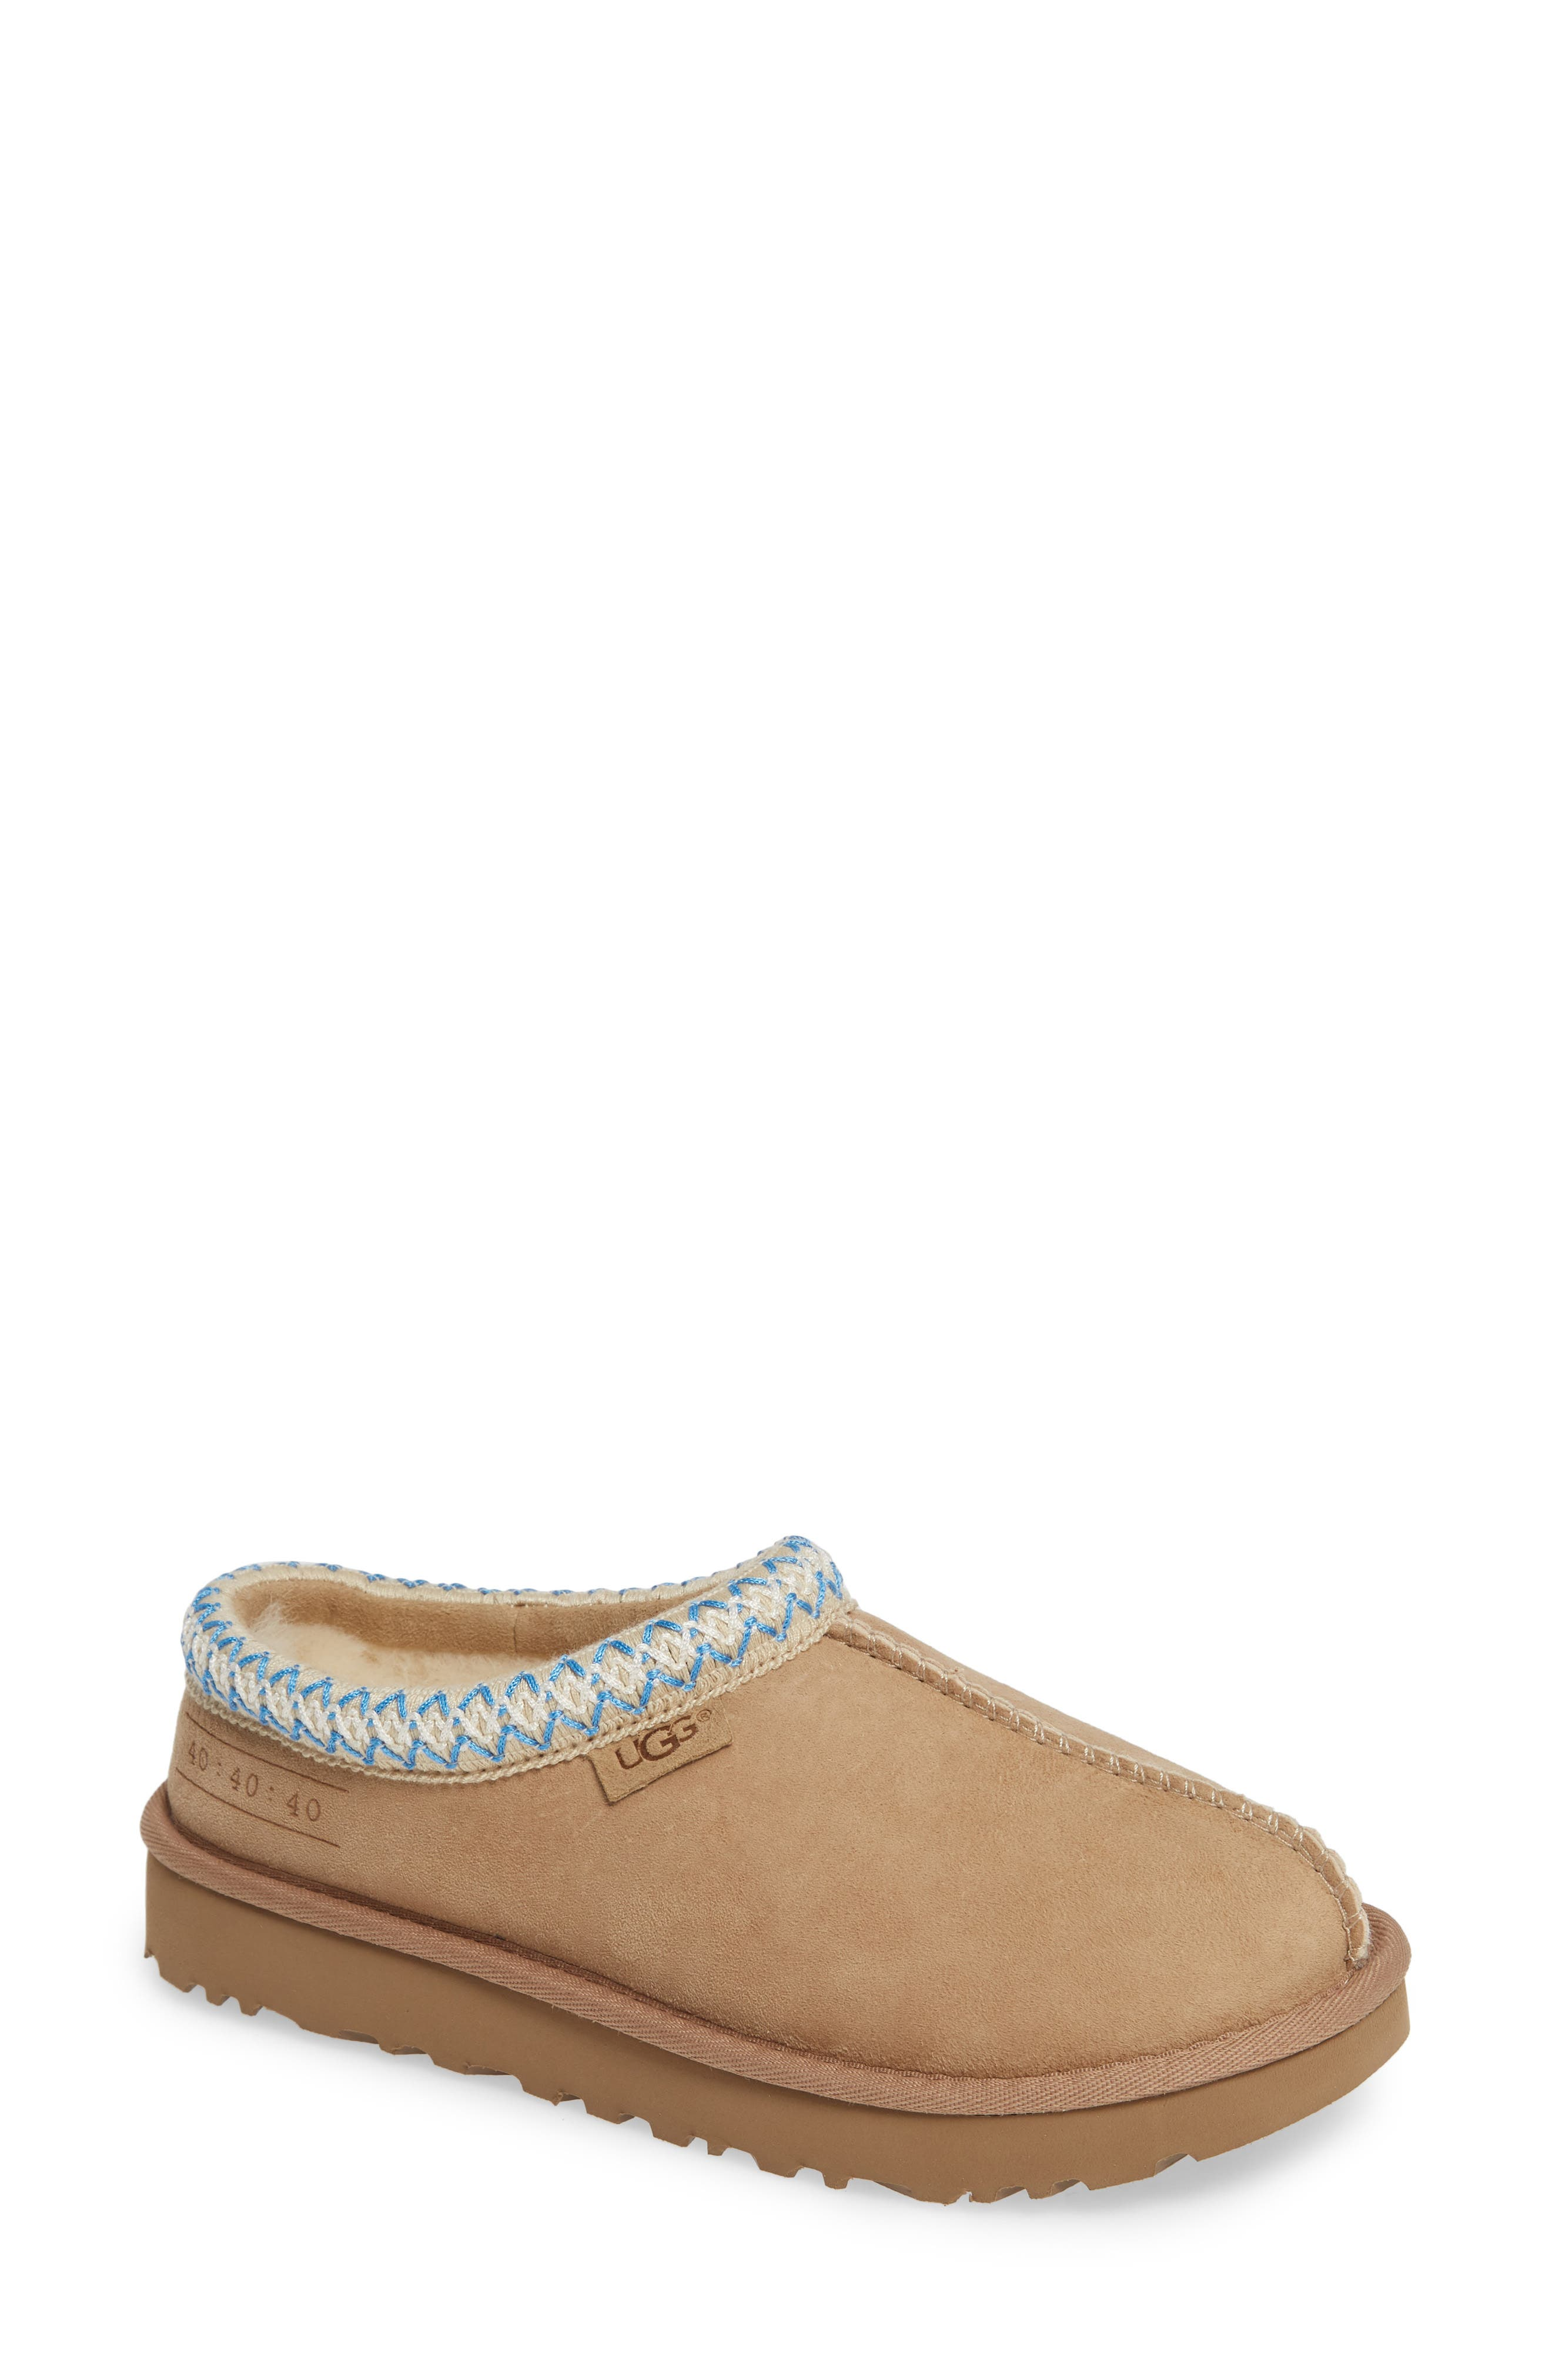 best price on womens uggs